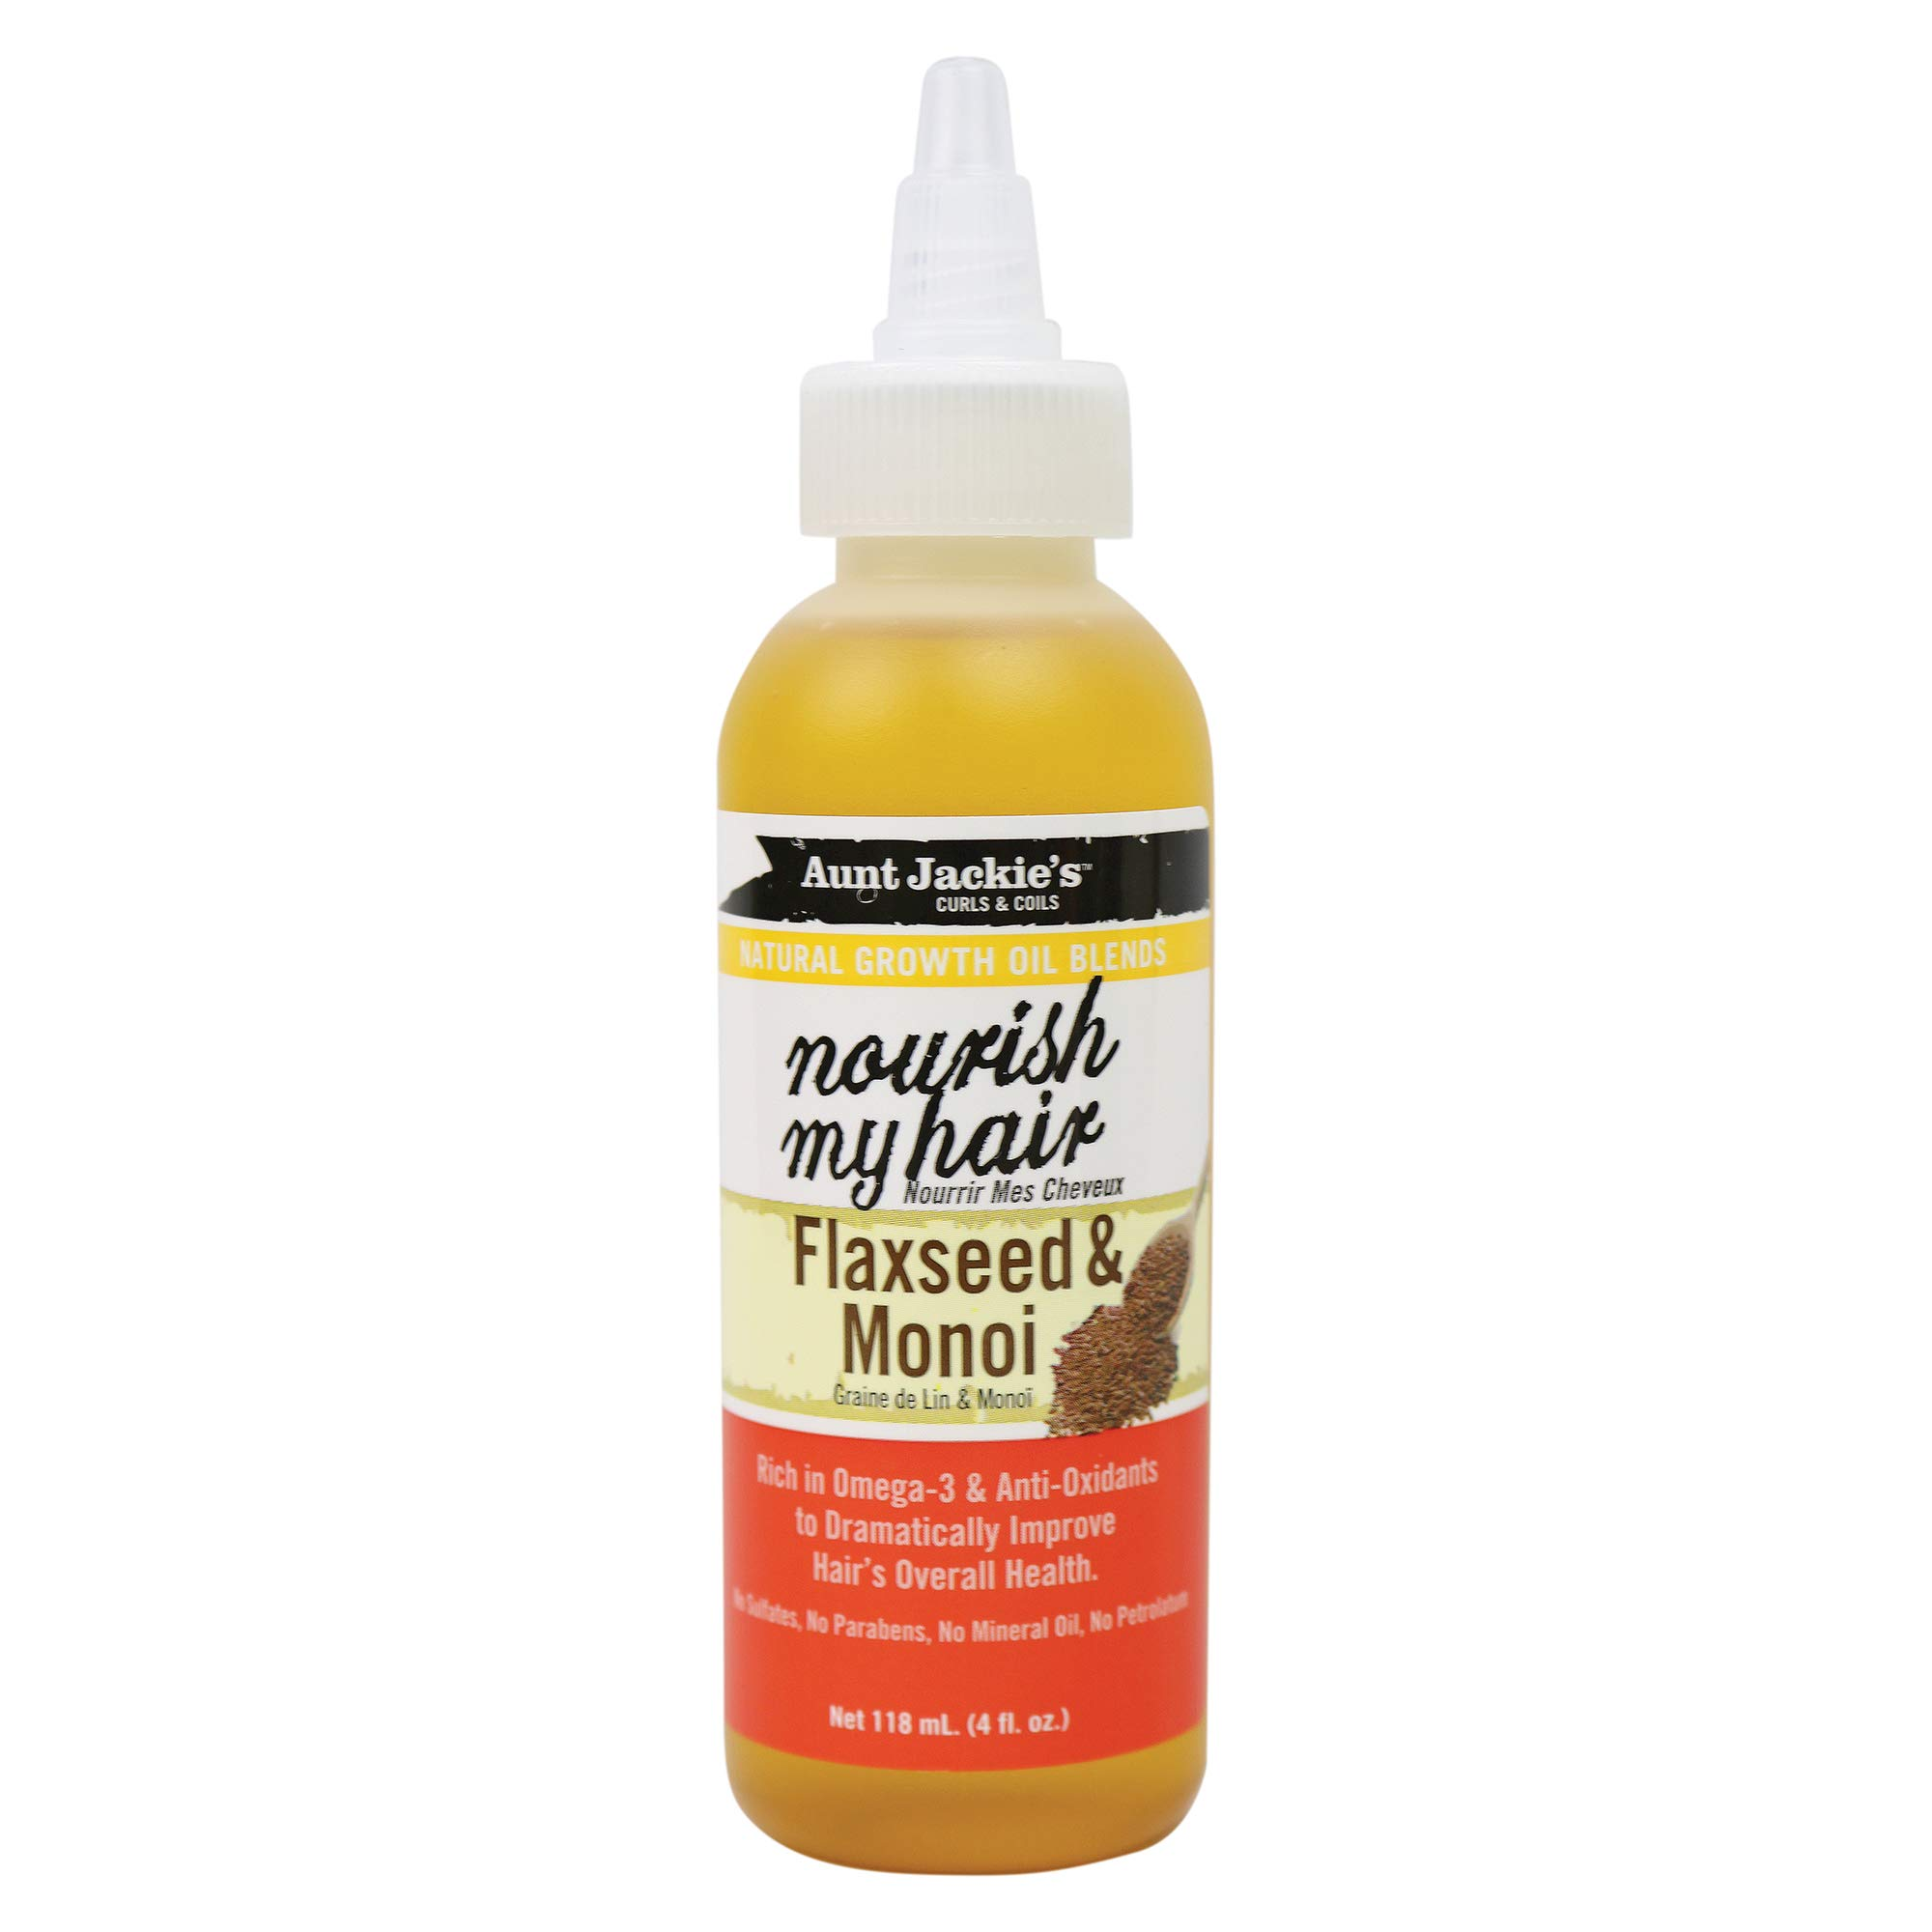 Aunt Jackie's Natural Growth Oil Nourish My Hair Flaxseed & Monoi, 4oz, 4 Oz